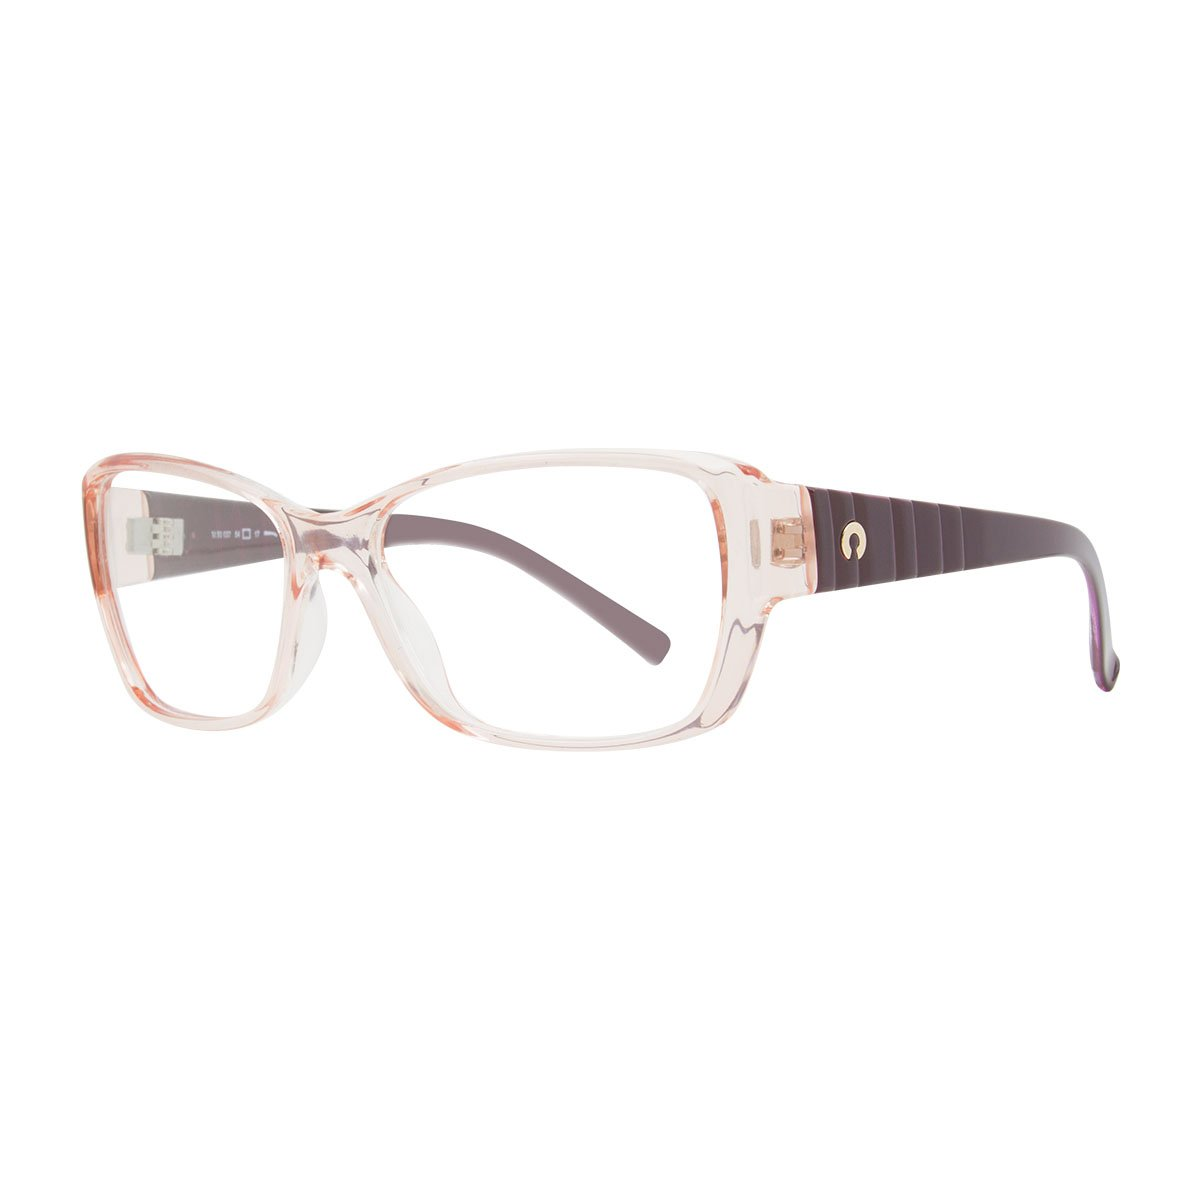 SECRET GRILAMID 80037 GLASSY CORALE / PASSIONATE